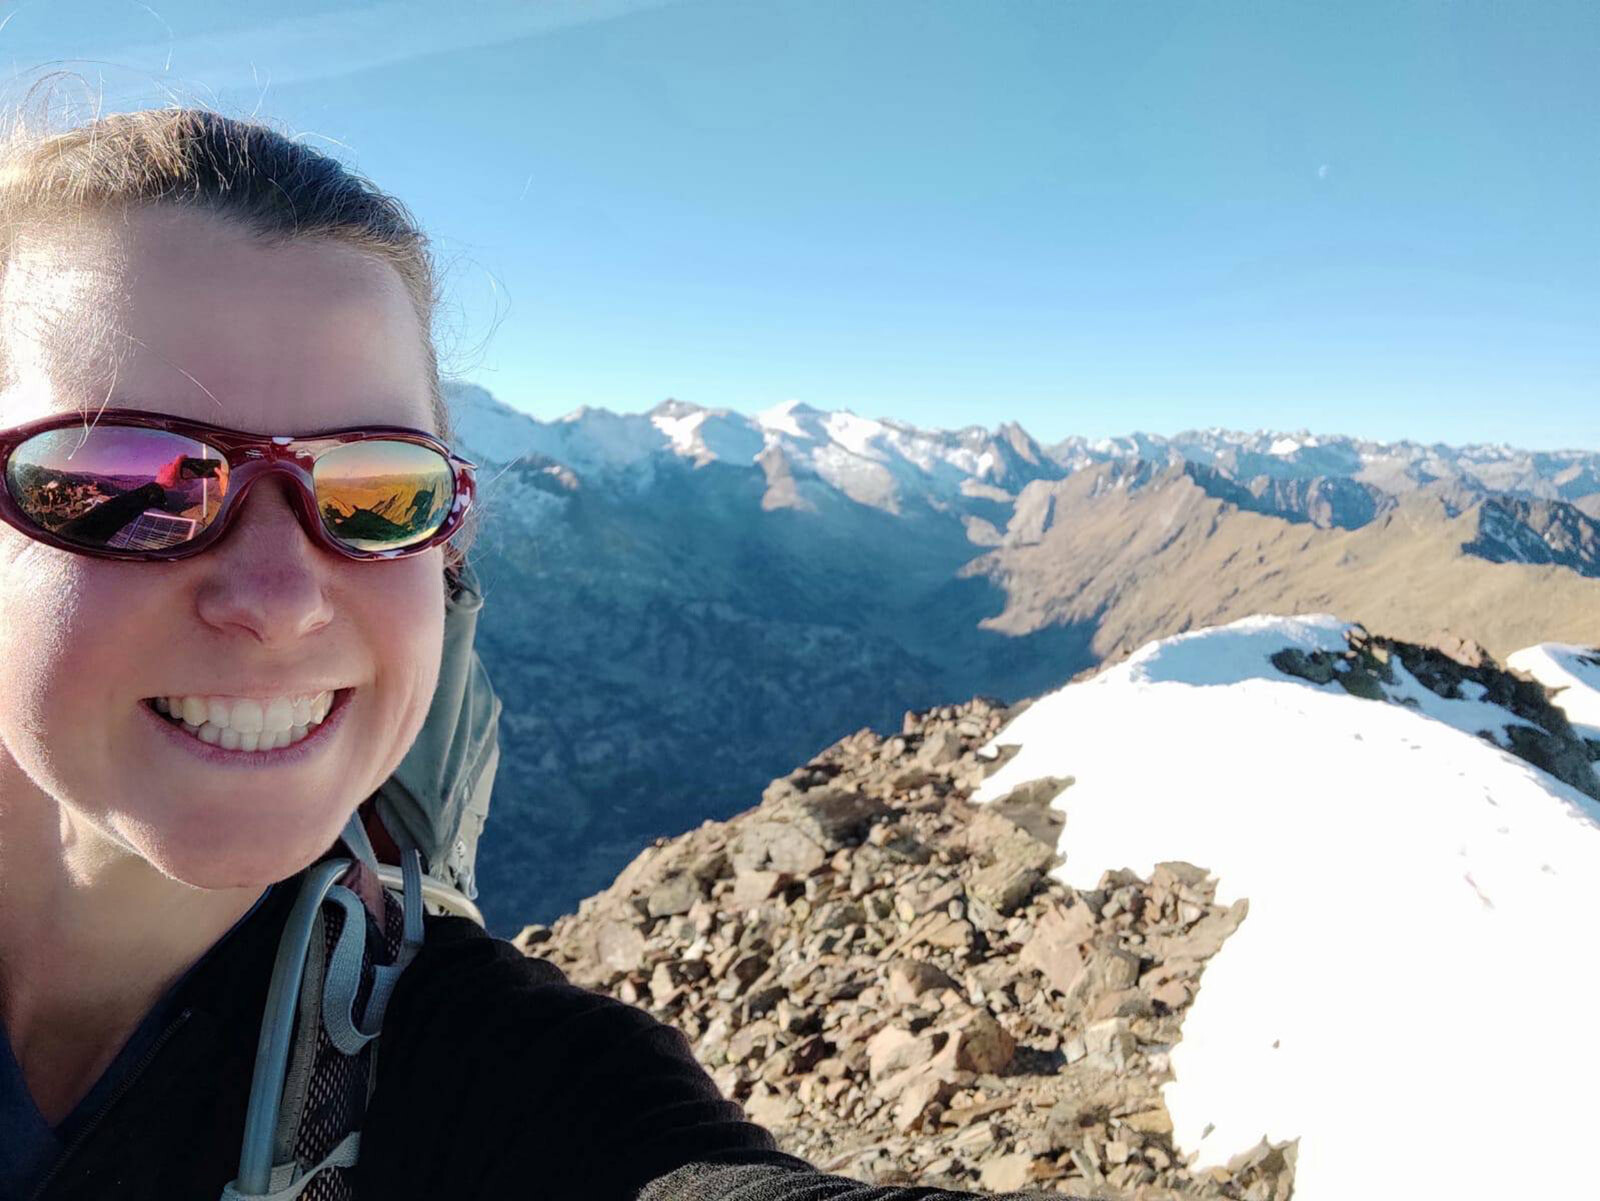 <i>From PGHM Luchon/Facebook</i><br/>Esther Dingley went missing during a three-day hike in the Pyrenees mountains last November.